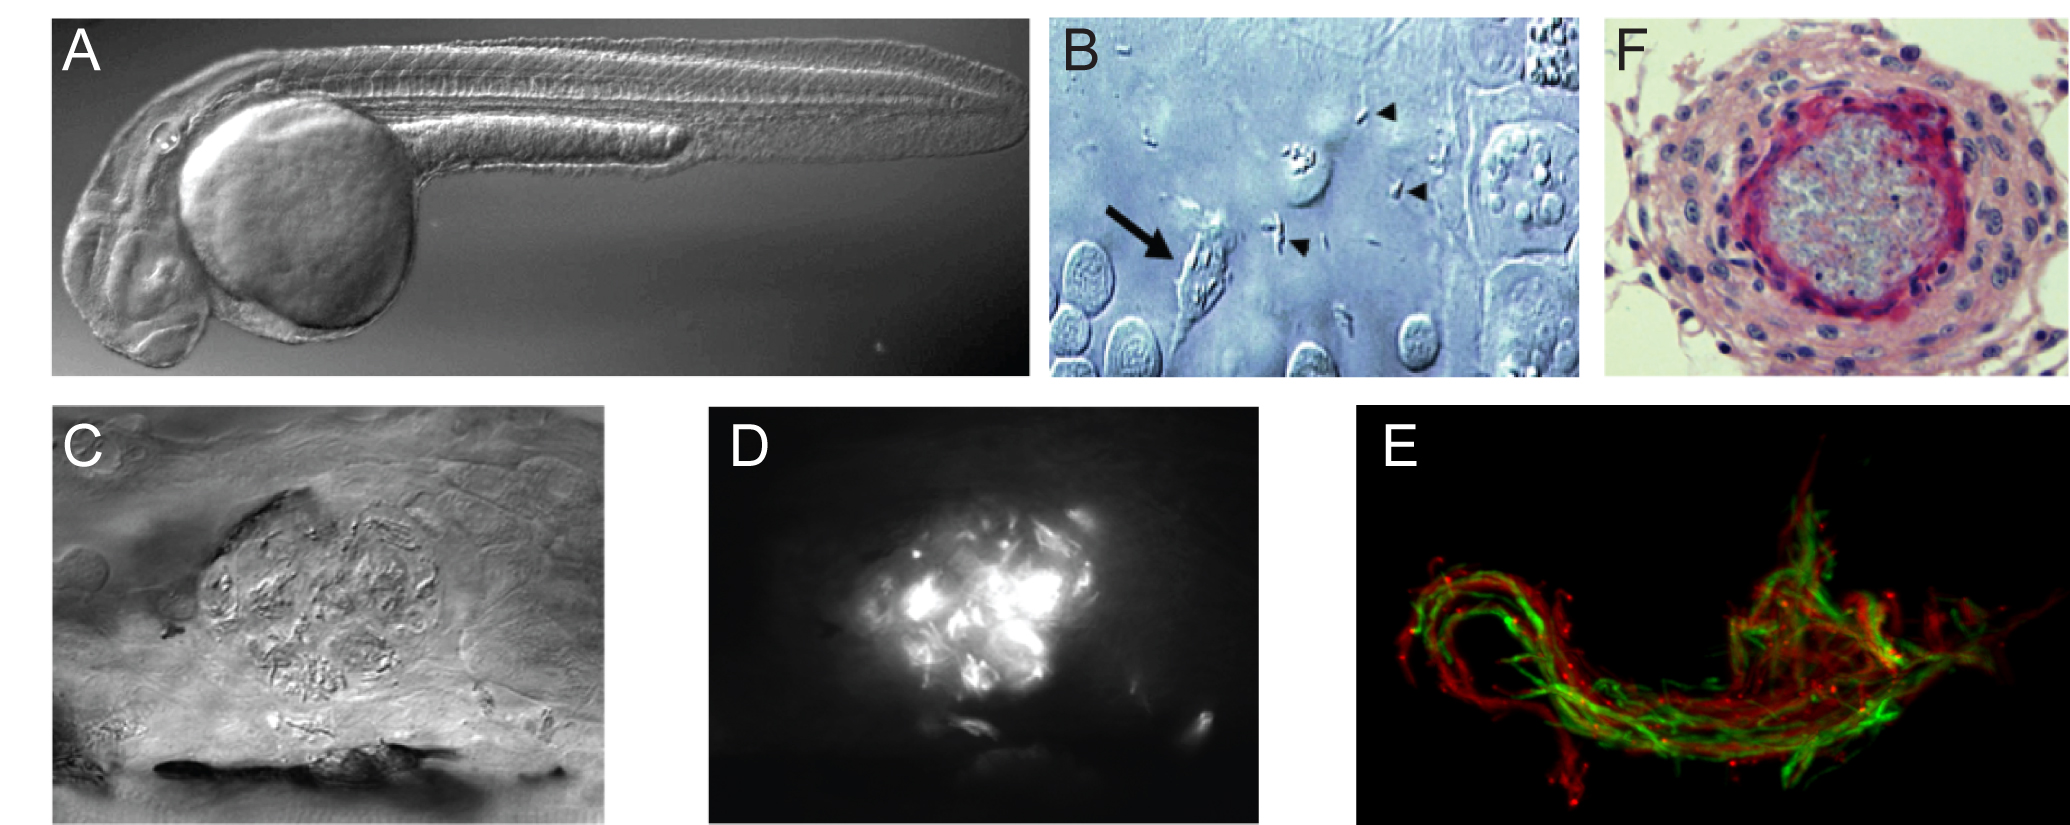 Pathogenic stages of  M. marinum  infection of zebrafish. (A) Optically transparent zebrafish larva. (B) Differential interference contrast (DIC) microscopy image of infected macrophage (arrow) phagocytosing extracellular mycobacteria (arrowhead). (C) DIC image of early granulomas. (D) Epifluorescent image of C showing fluorescently labelled M. marinum inside individual macrophages. (E) Confocal microscopy image of cording  M. marinum  (red and green fluorescent strains used to emphasize cording phenotype) in a 5dpi infected larva. (F) Immunohistology of a mature granuloma in an adult infected zebrafish at 8 weeks post infection